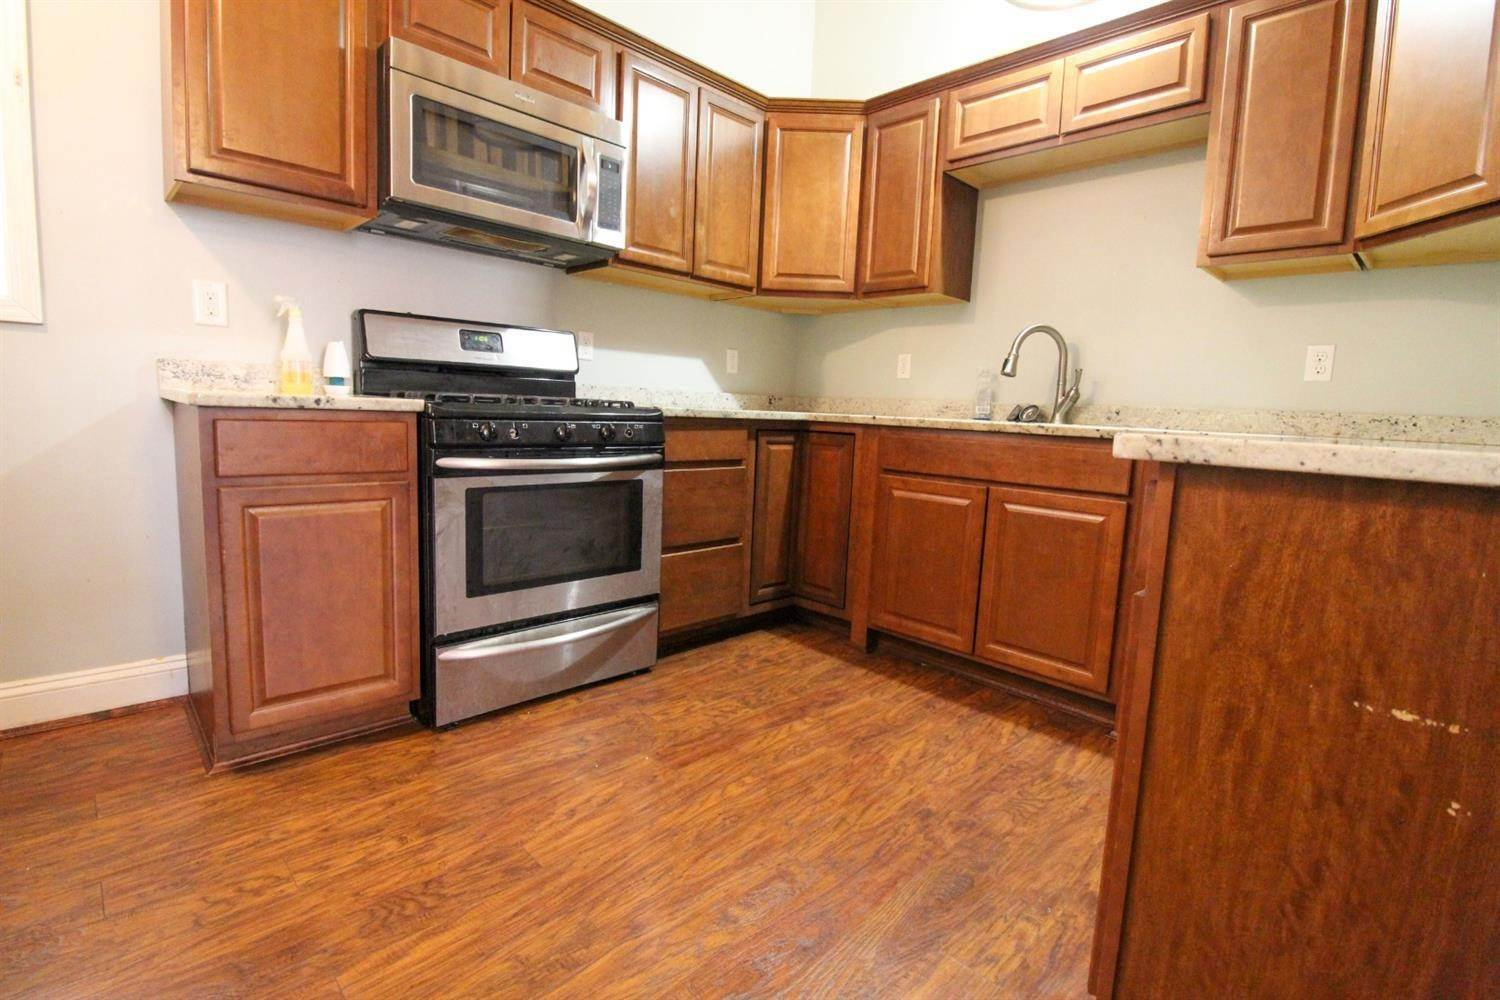 Apartments for Sale at 1101 Dayton Street Cincinnati, Ohio 45214 United States